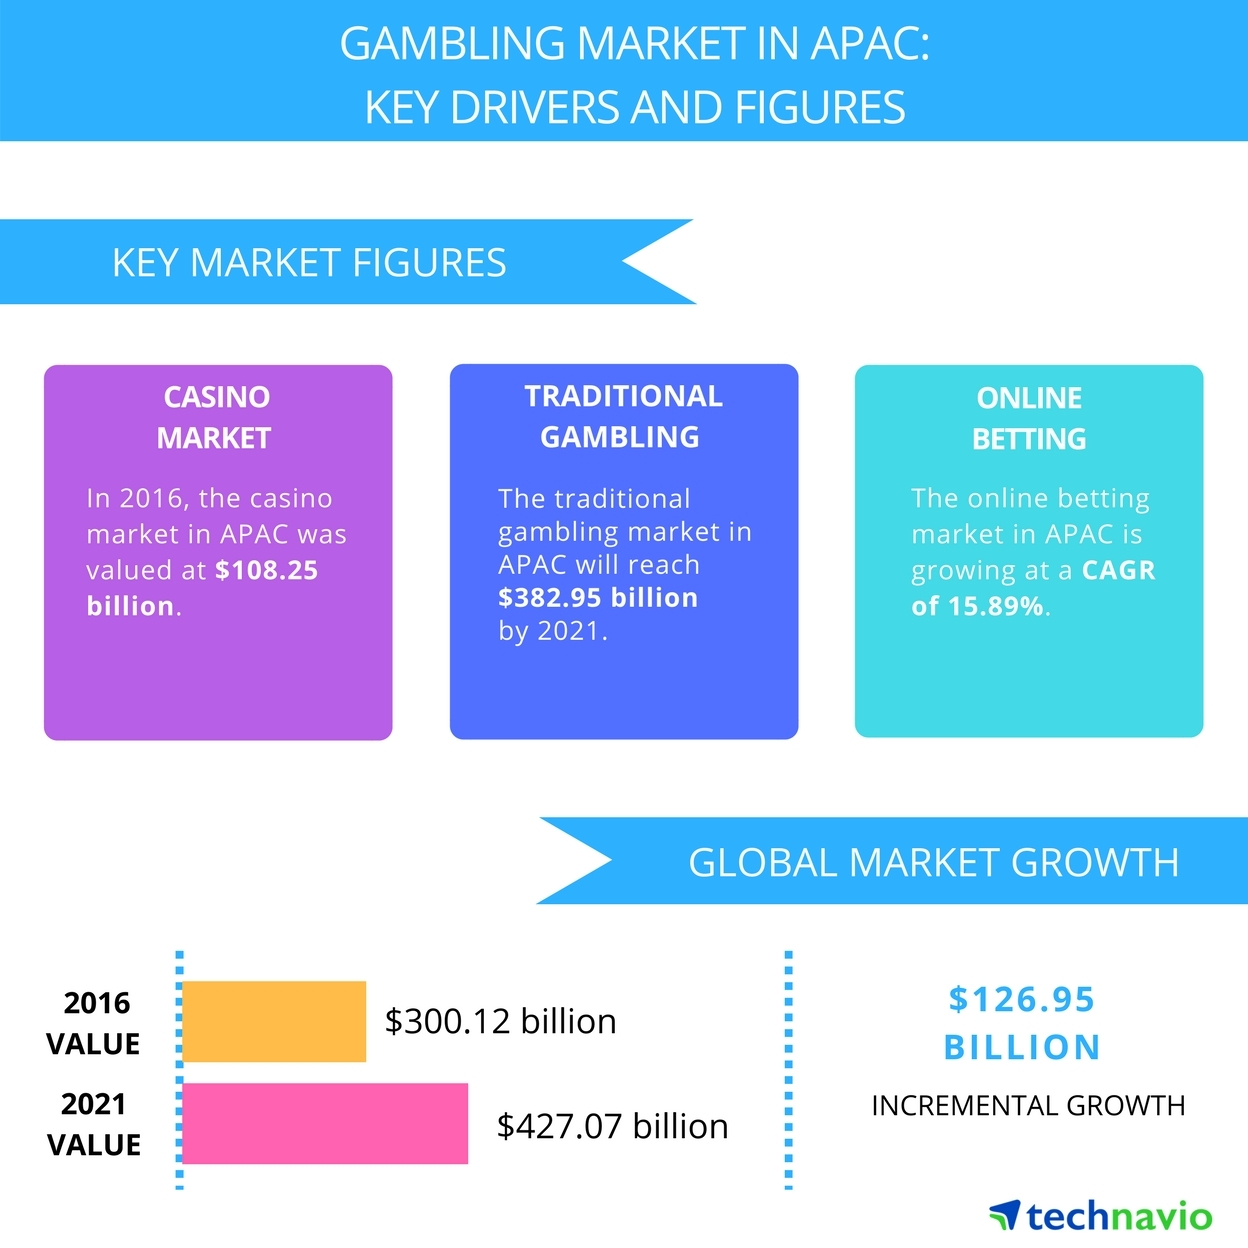 Technavio has published a new report on the gambling market in APAC from 2017-2021. (Graphic: Business Wire)